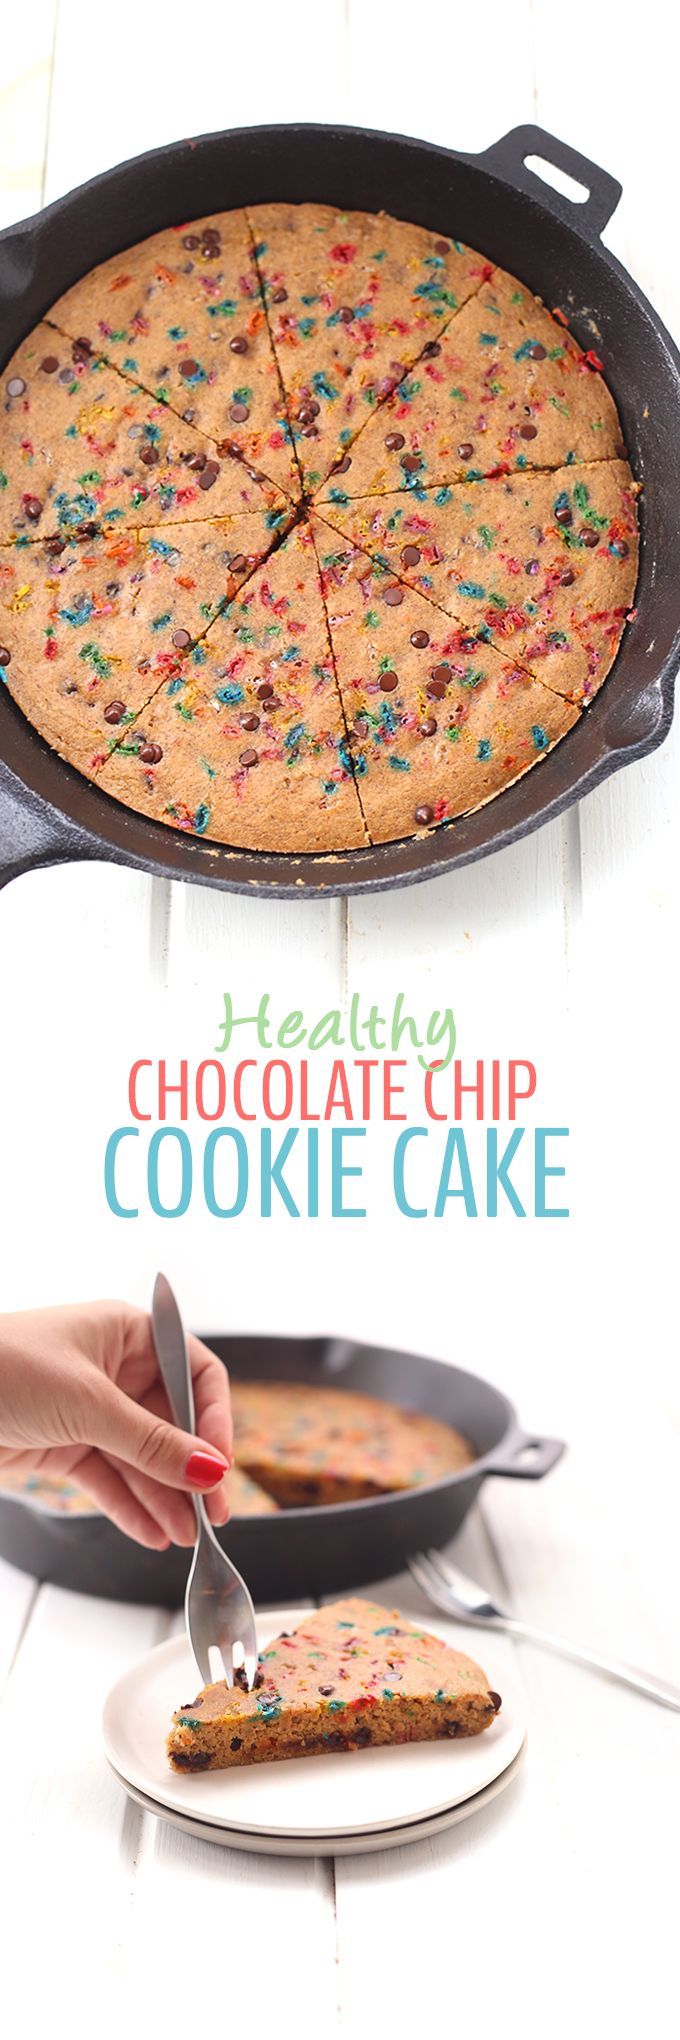 how to make homemade cookies without chocolate chips